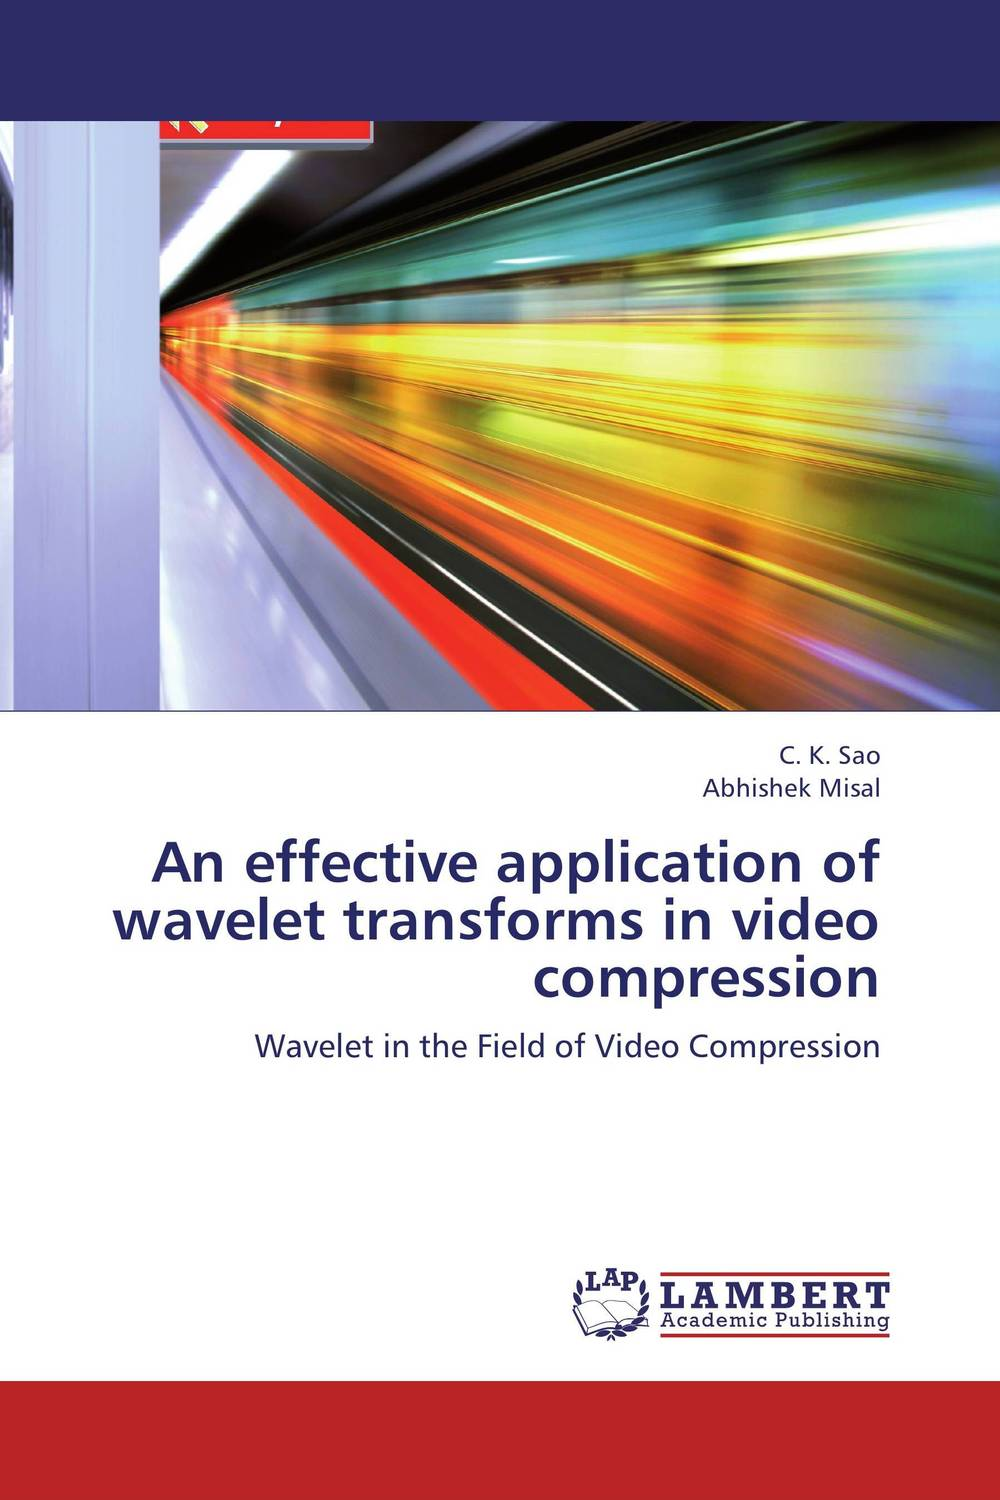 An effective application of wavelet transforms in video compression image compression using wavelet transform and other methods